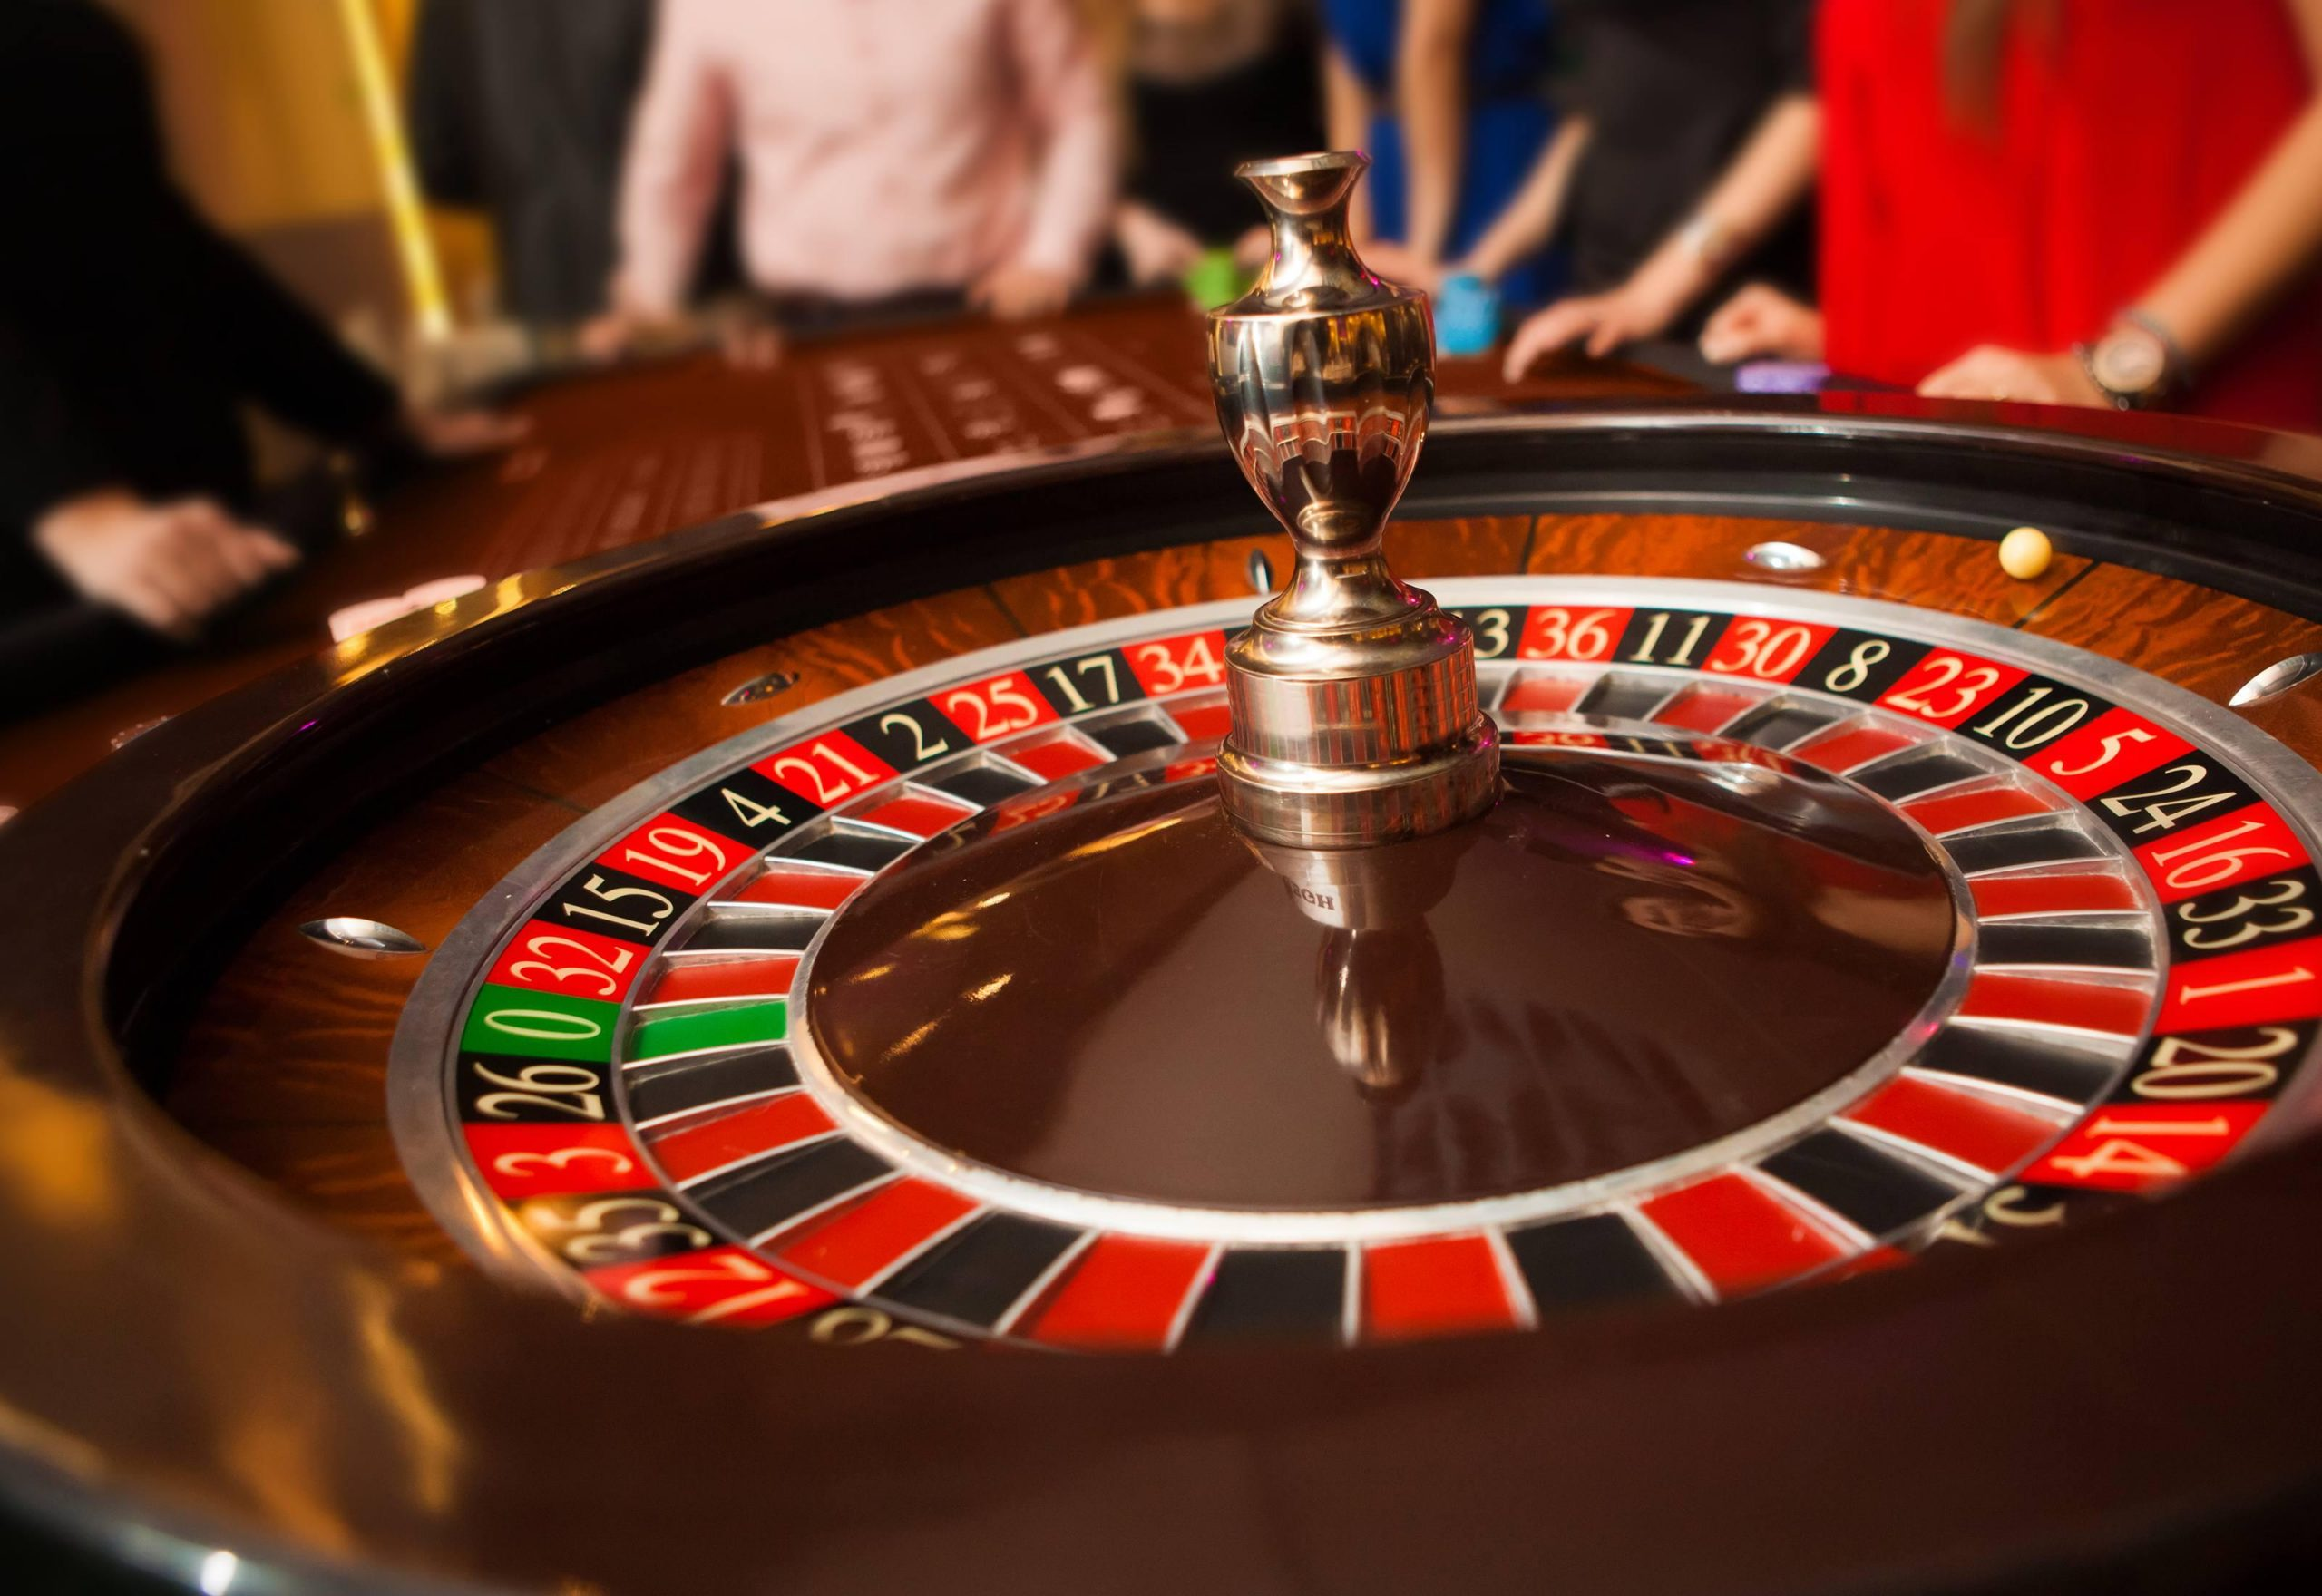 Try Out The Best Internet Casino $300 Signup Bonus